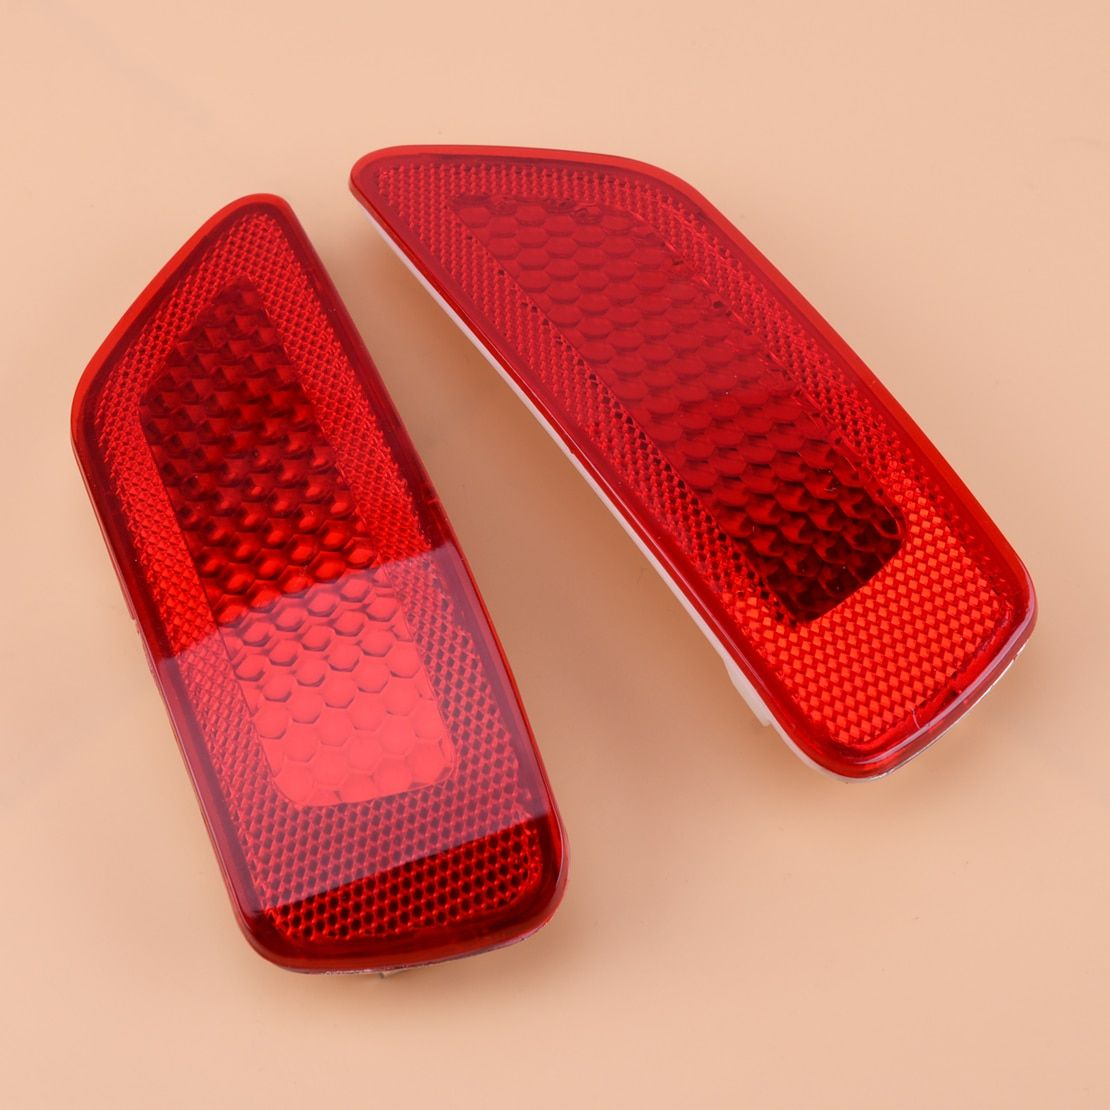 1 Pair Rear Bumper Reflector Light Lamp Fit For Jeep Grand Cherokee Compass 2011 2012 2013 2014 2015 2016 57010721a Bose Speaker Jeep Grand Cherokee Jeep Grand